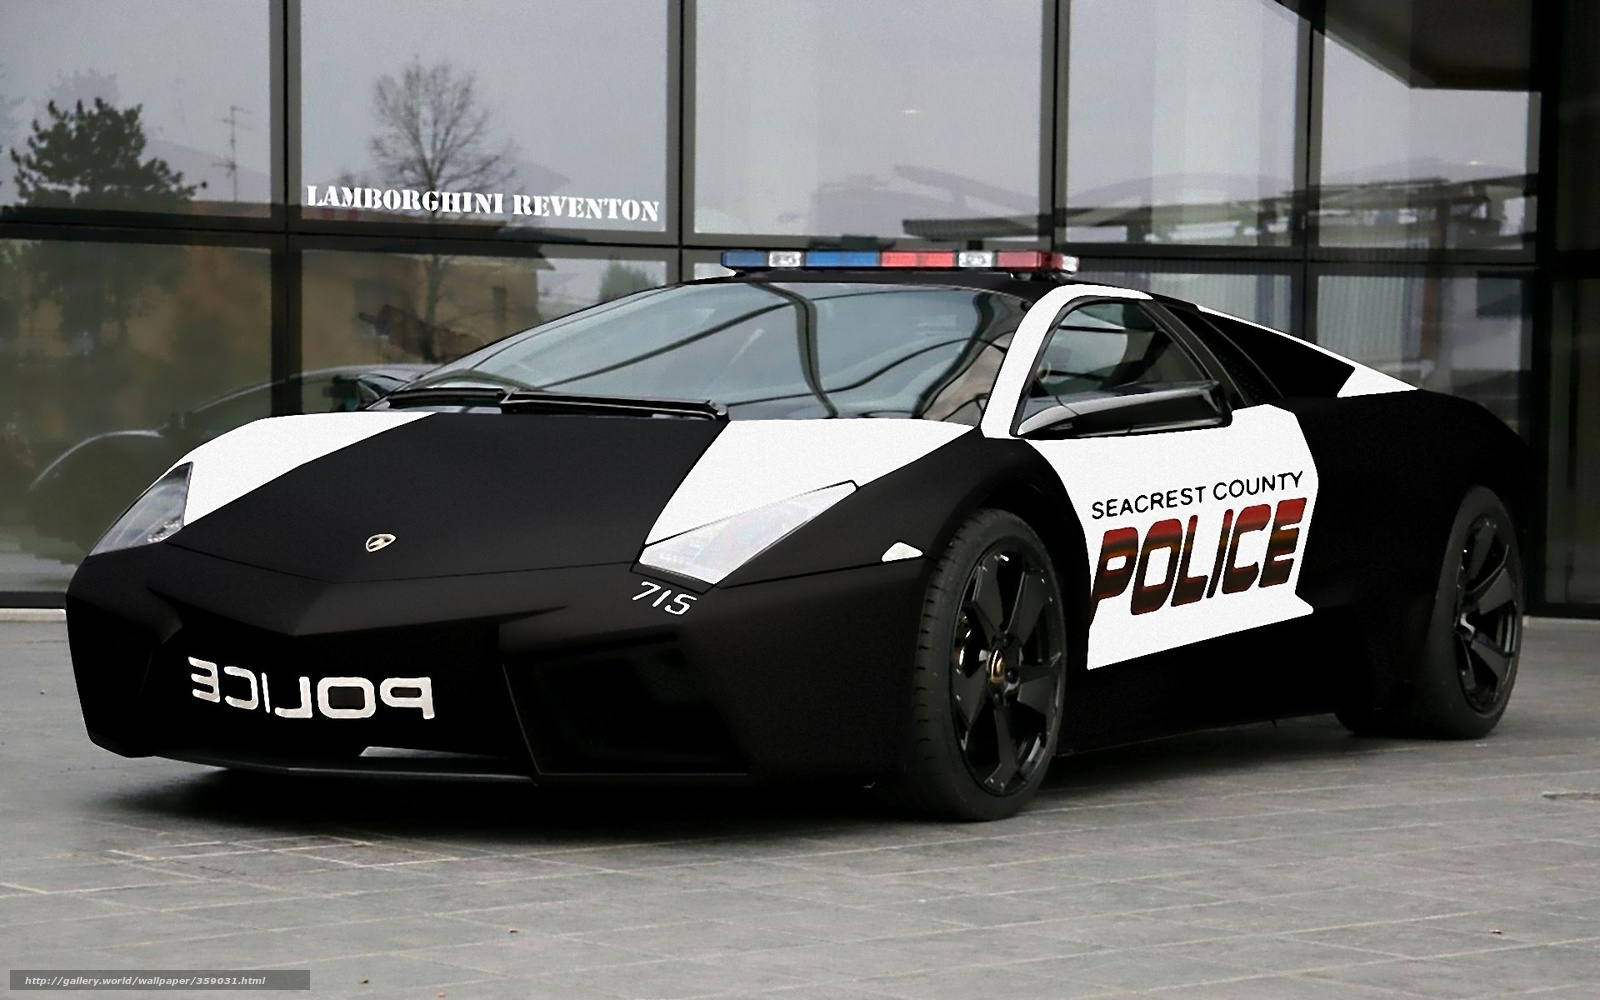 Lamborghini Reventon Police Car Wallpaper 762664